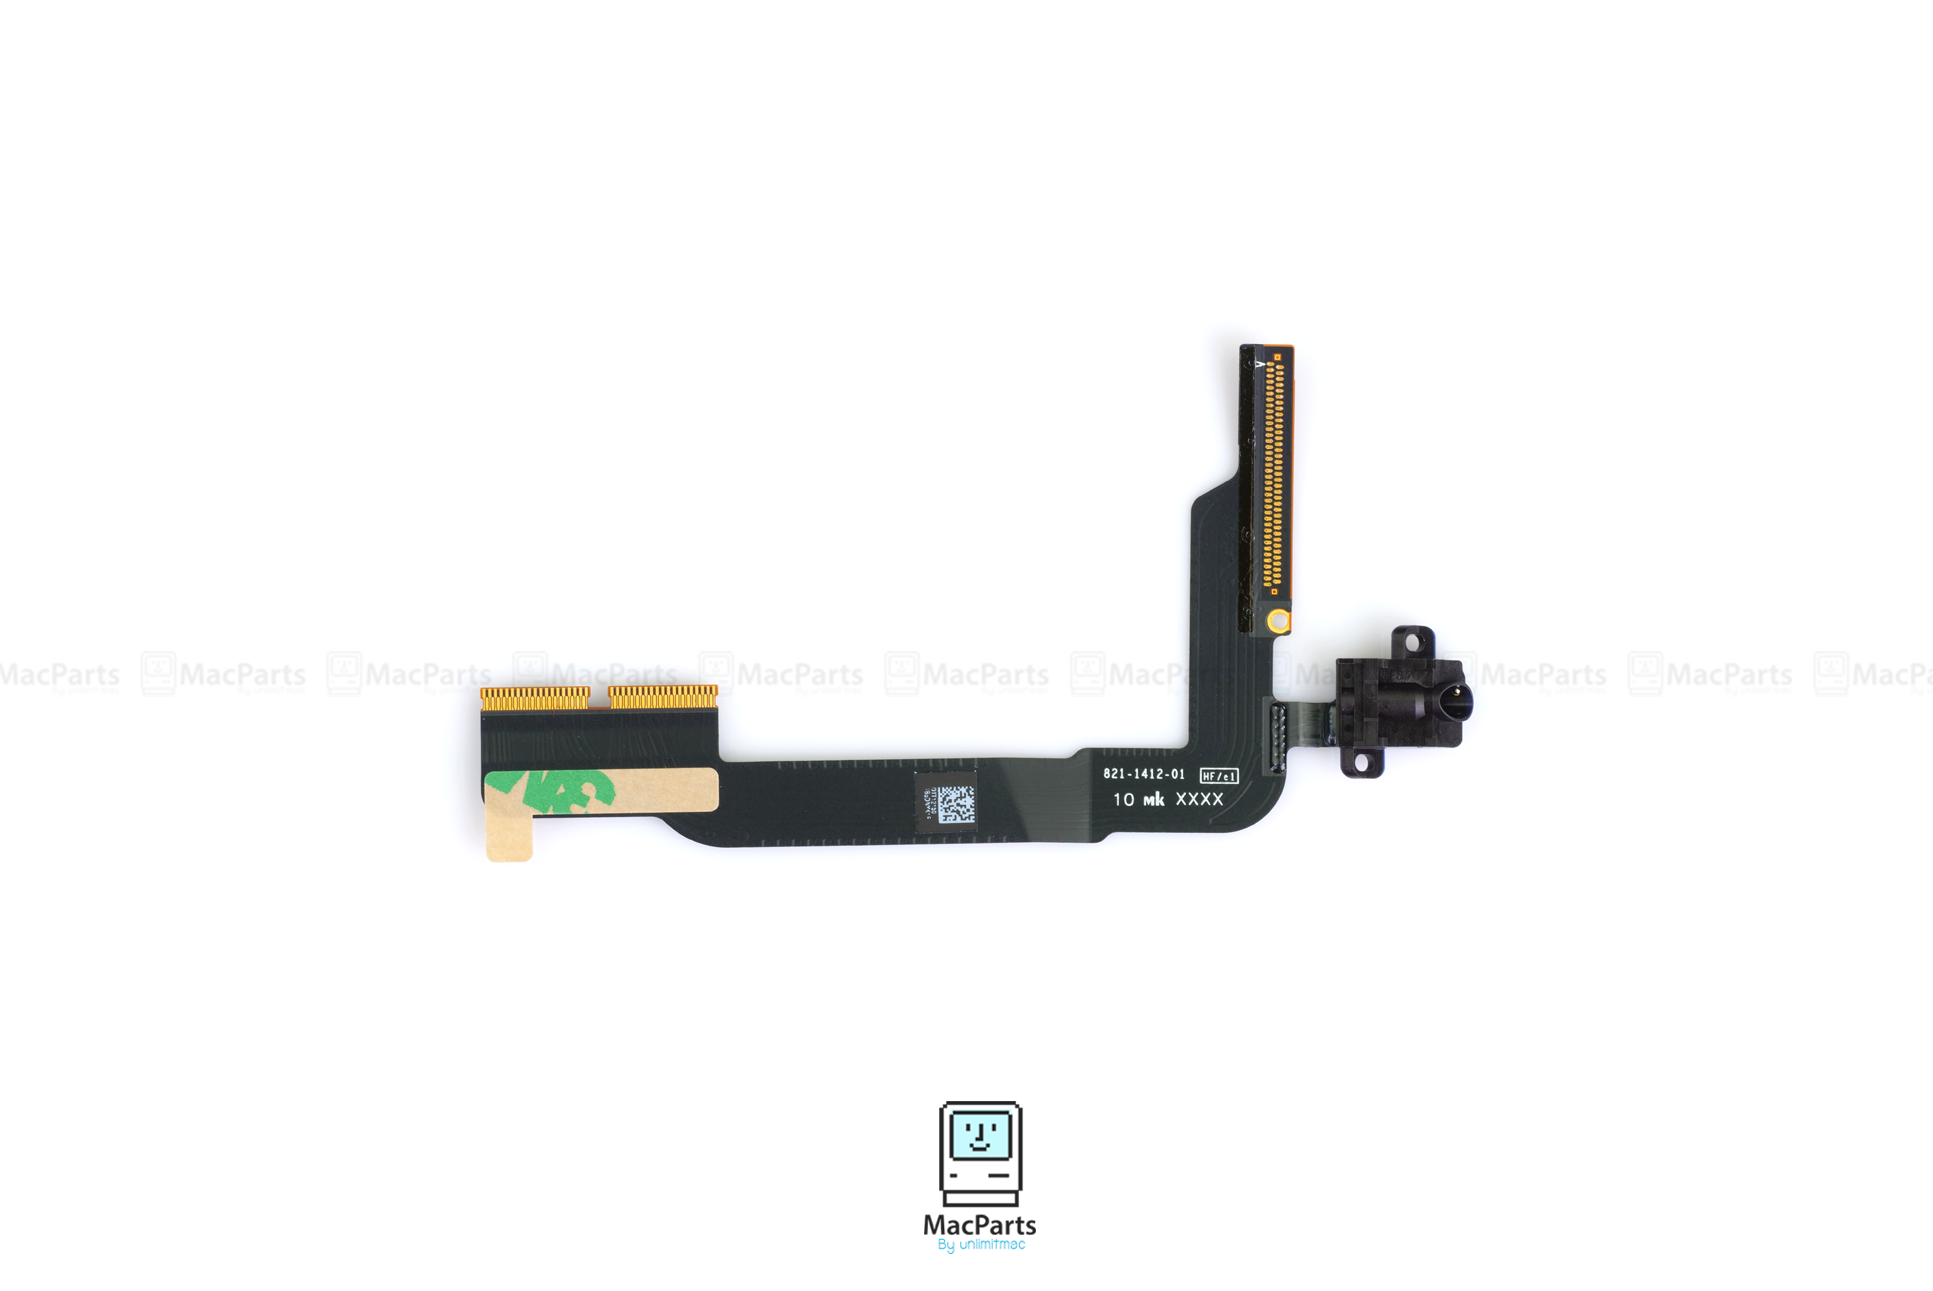 821-1412-01 iPad 3 headphone jack